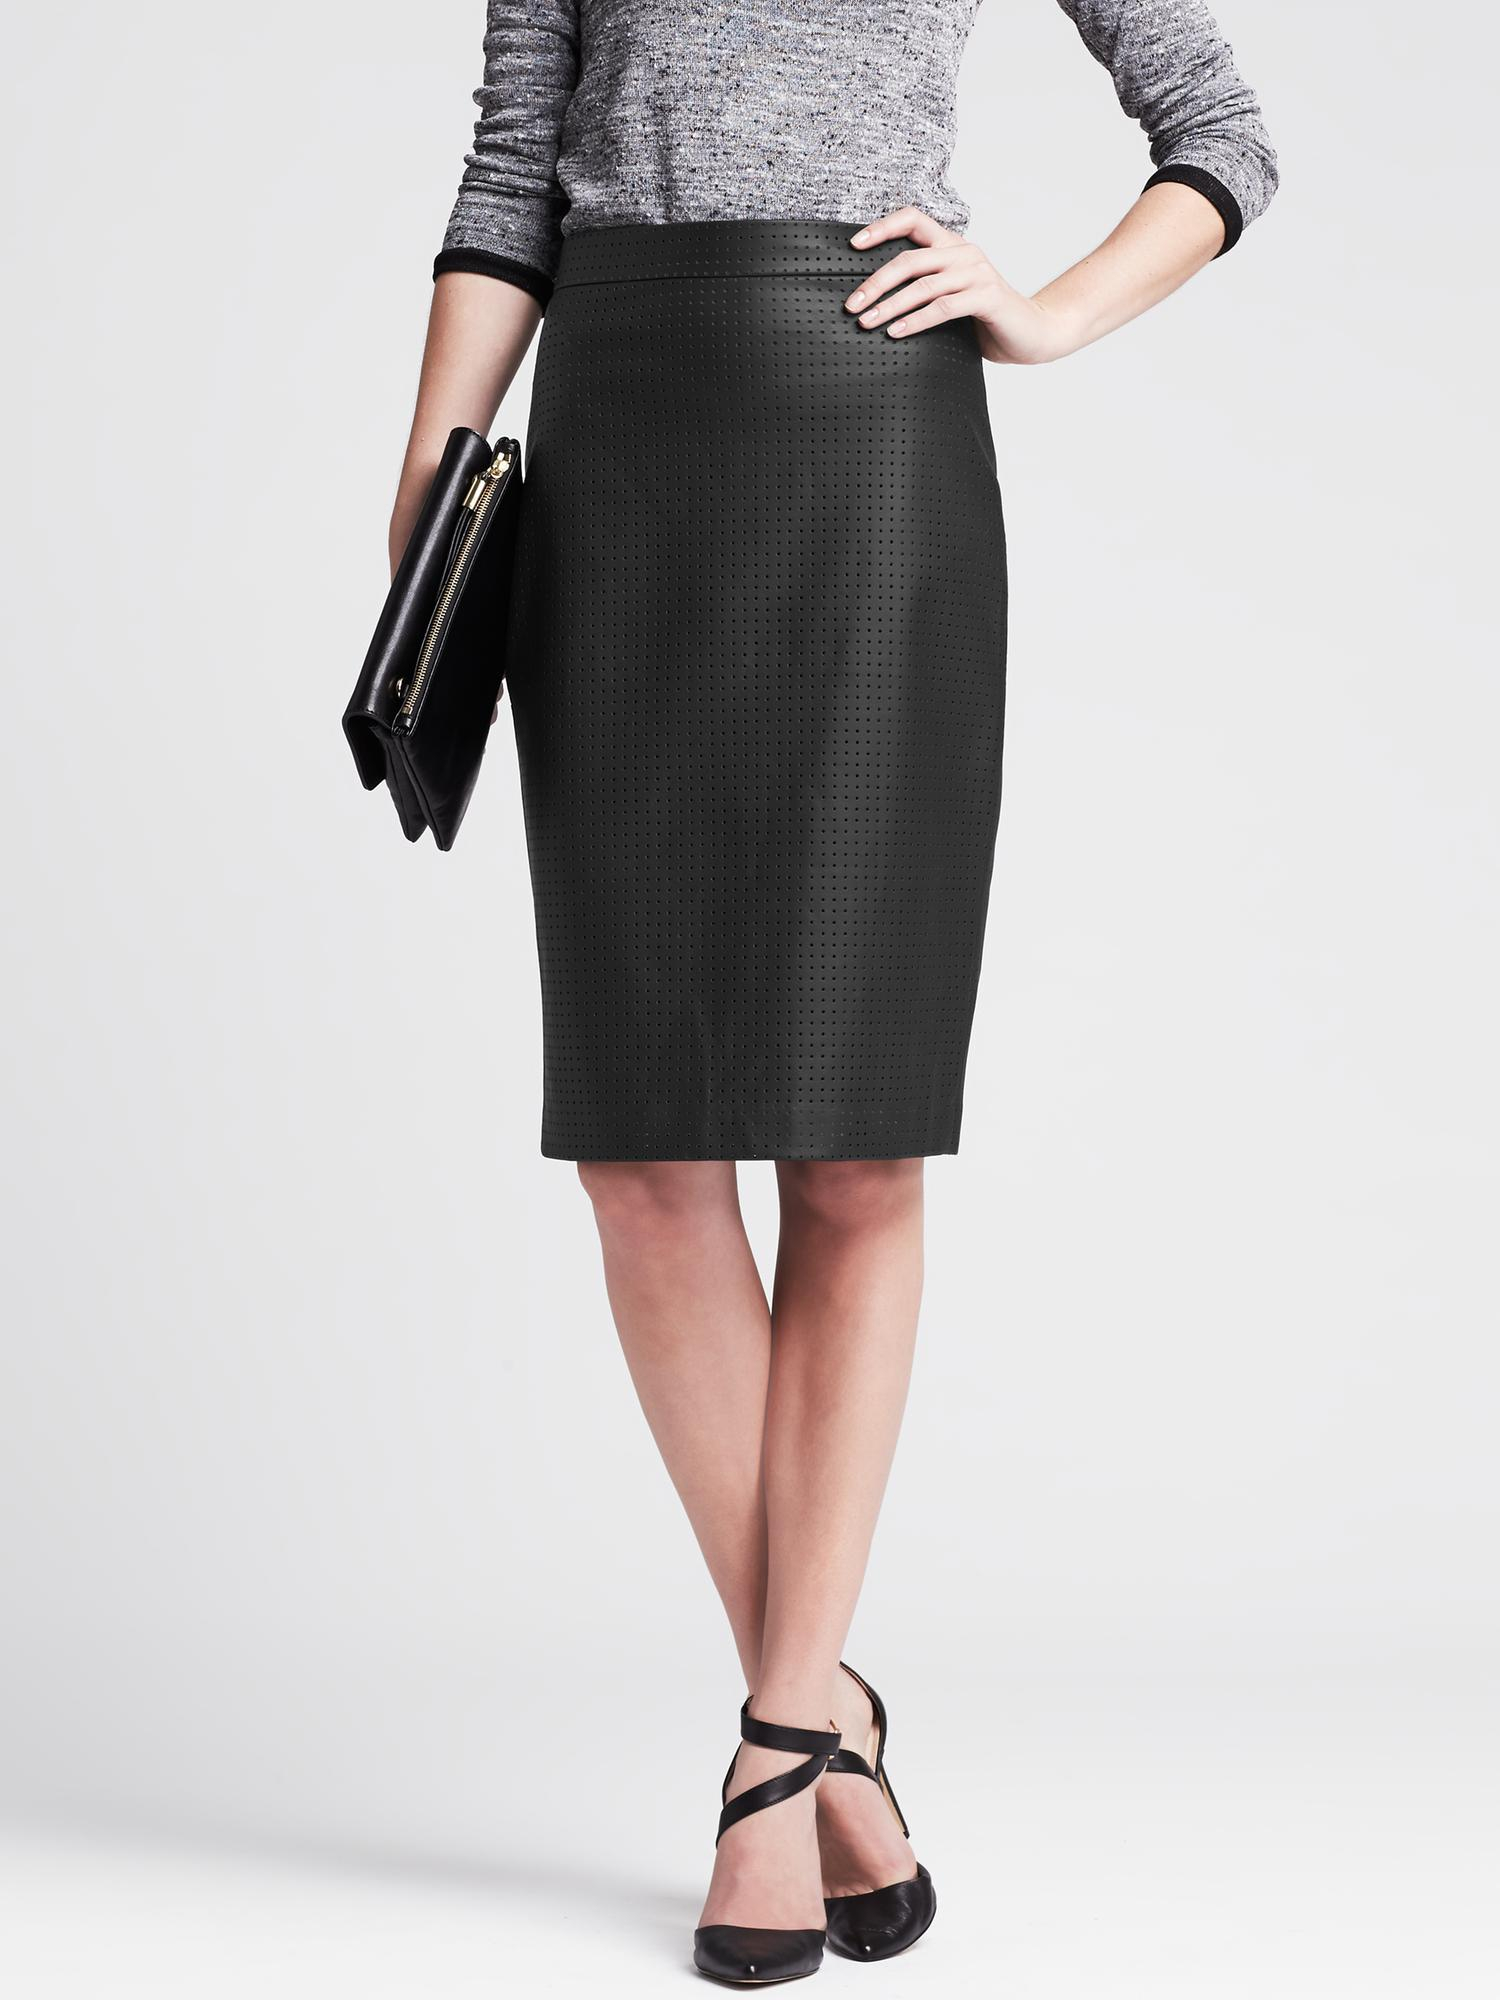 a7900d86ca Banana Republic Perforated Black Faux-Leather Skirt in Black - Lyst